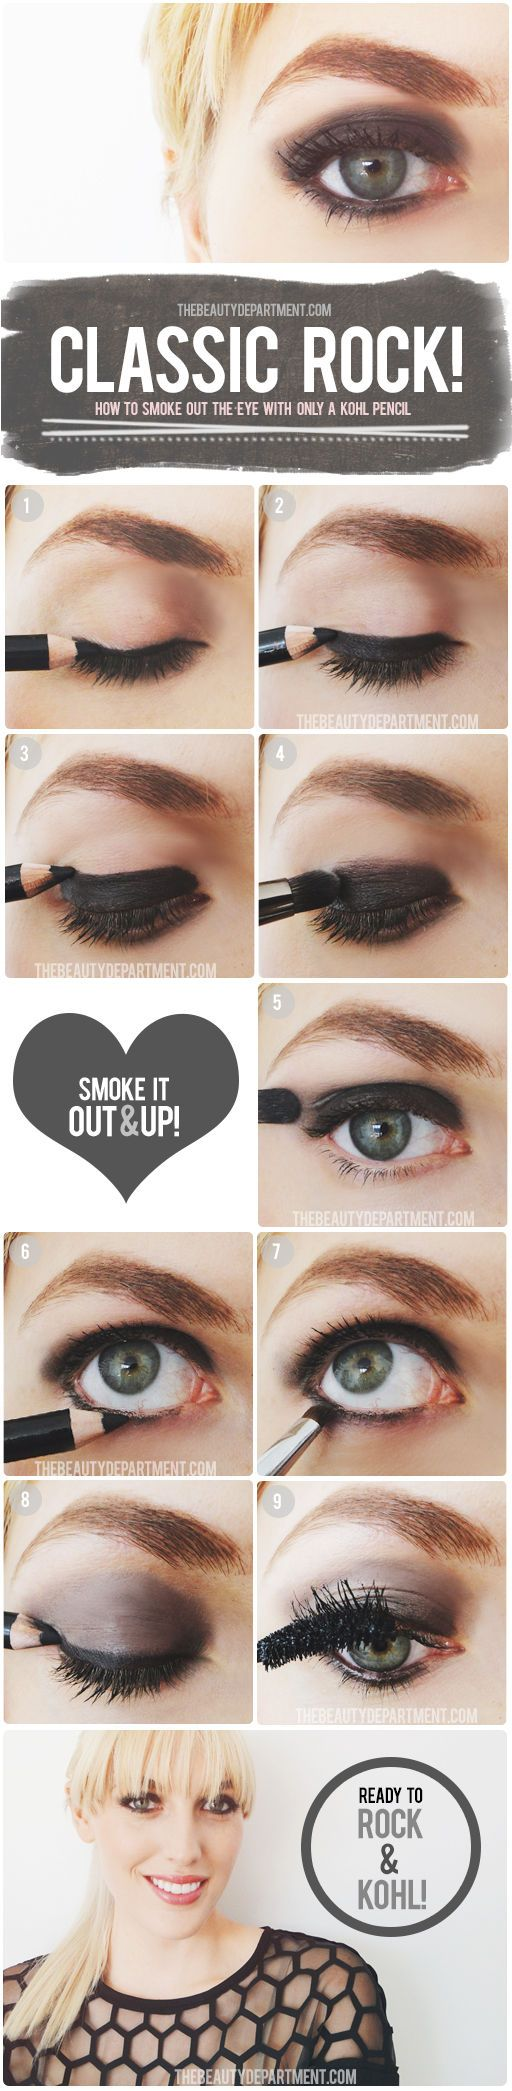 "Back to the Basics! Try this for more of a ""watercolor"" finish that you can't get with eyeshadow!"